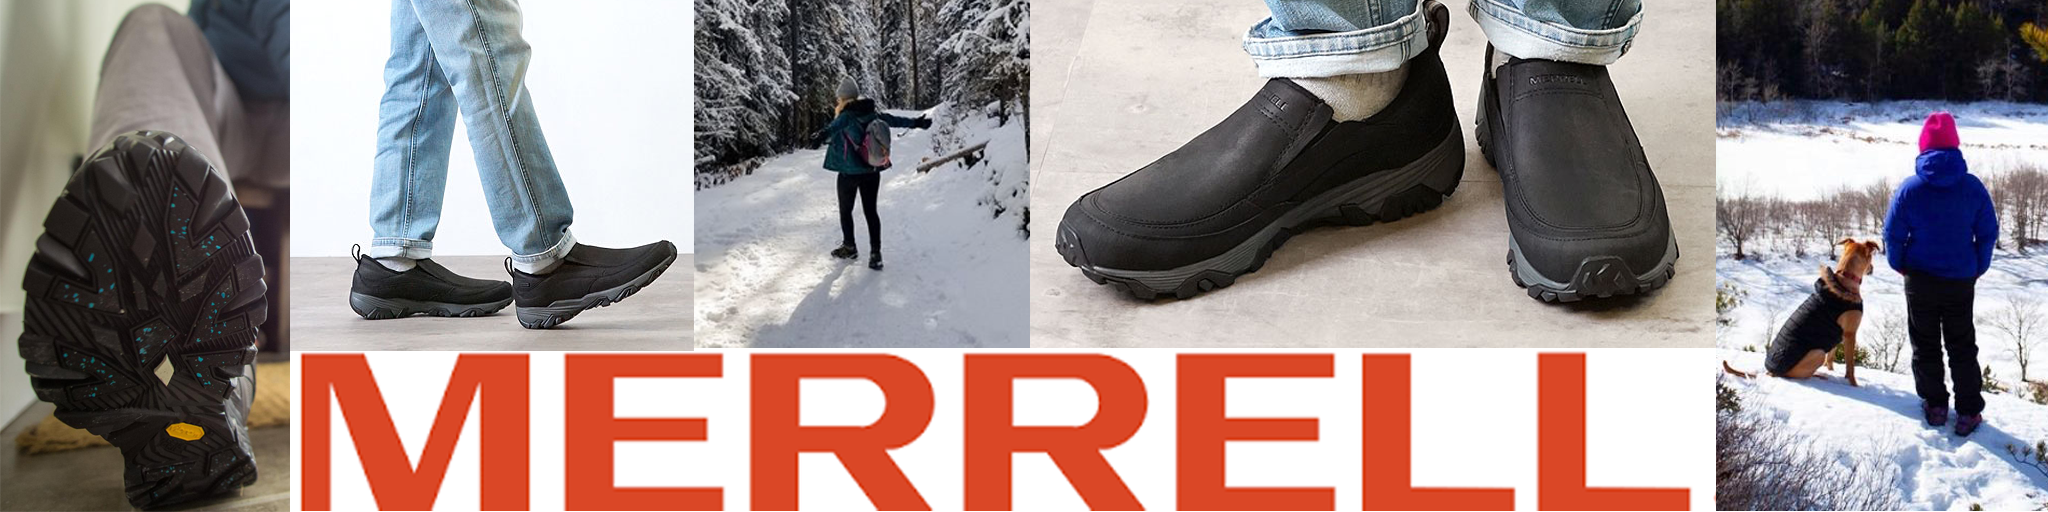 Merrell Collection Banner